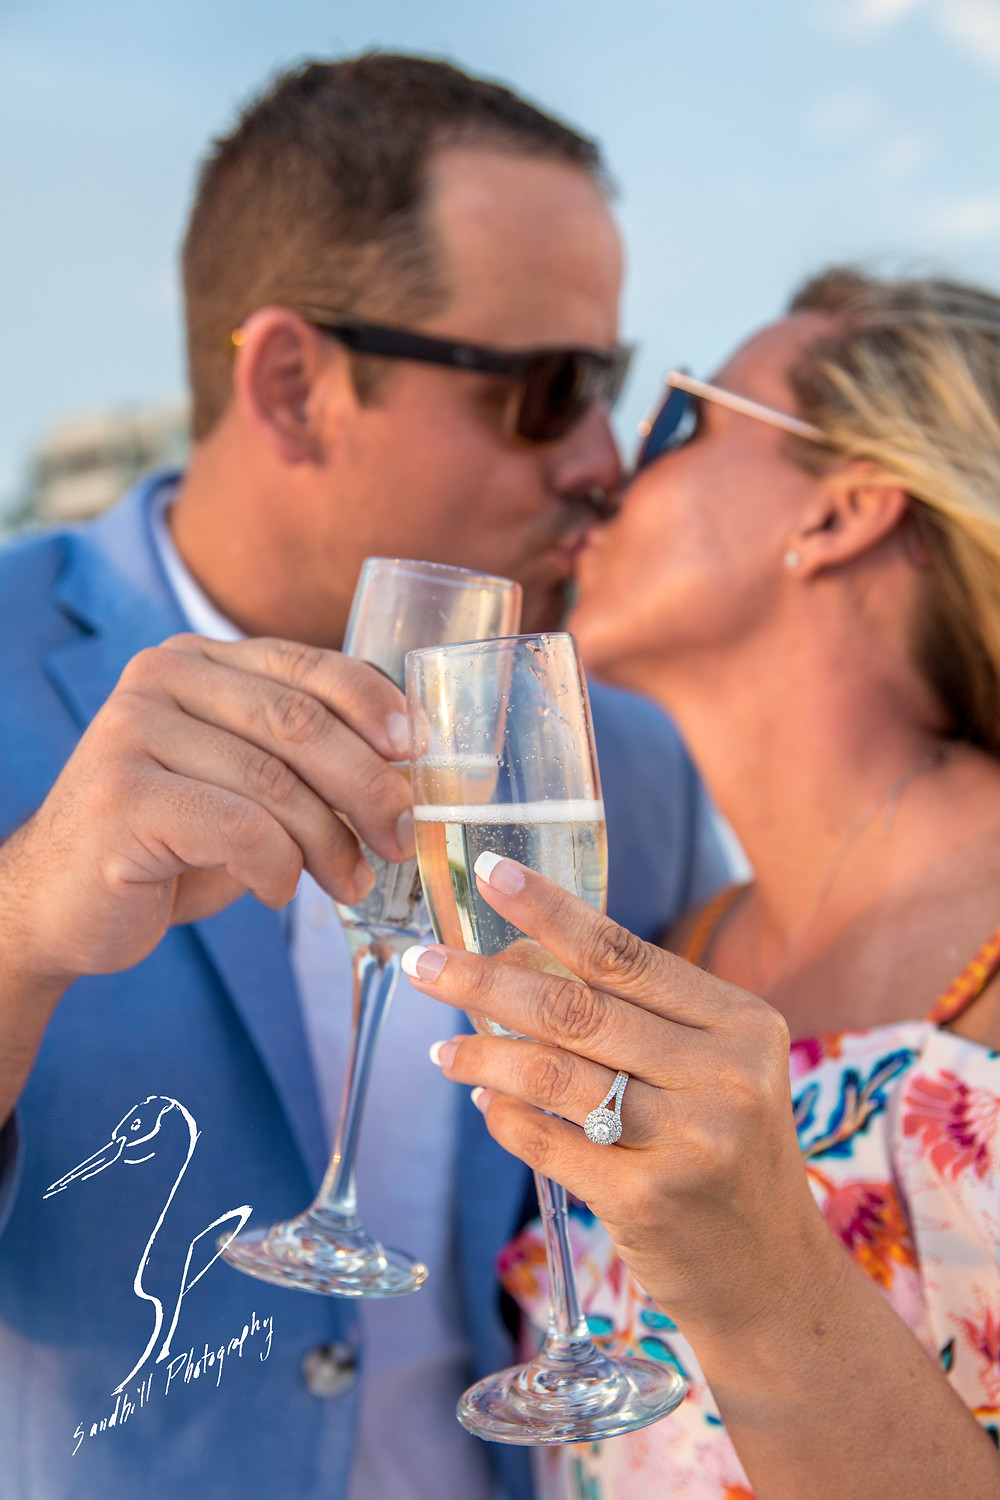 Longboat Key Surprise Proposal by Sandhill Photography with couple kissing behind champagne glasses with the engagement ring in focus